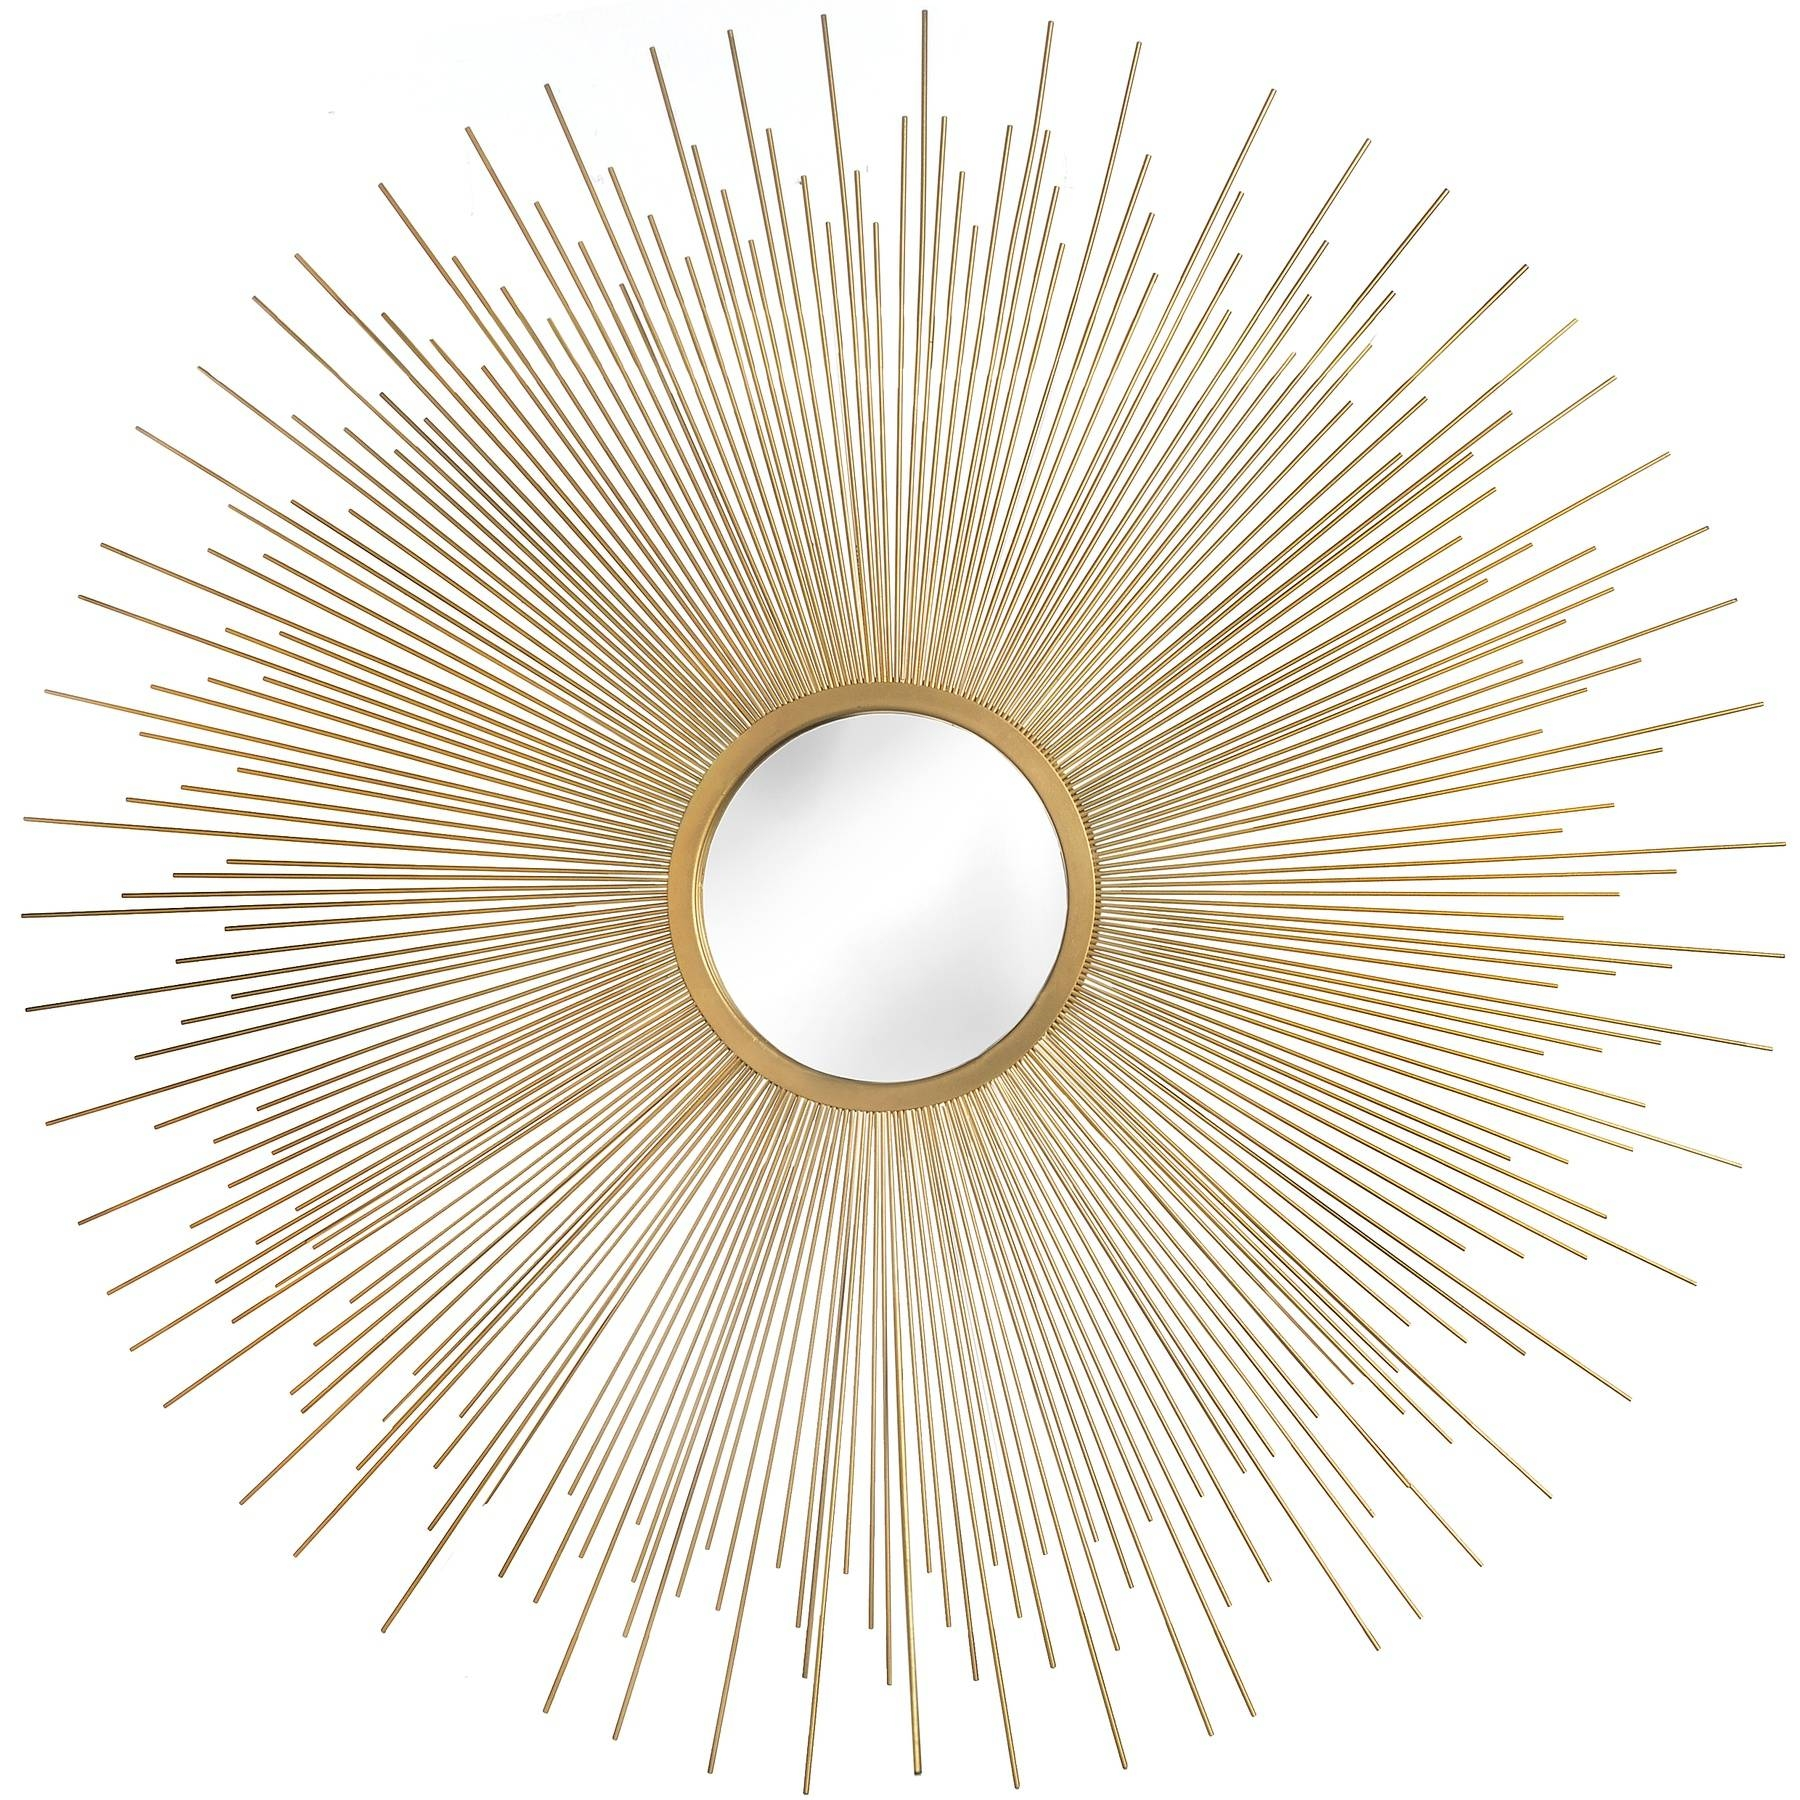 Rising Sun Gold Metal Wall Art Mirror | From Baytree Interiors With Current Gold Metal Wall Art (View 5 of 20)